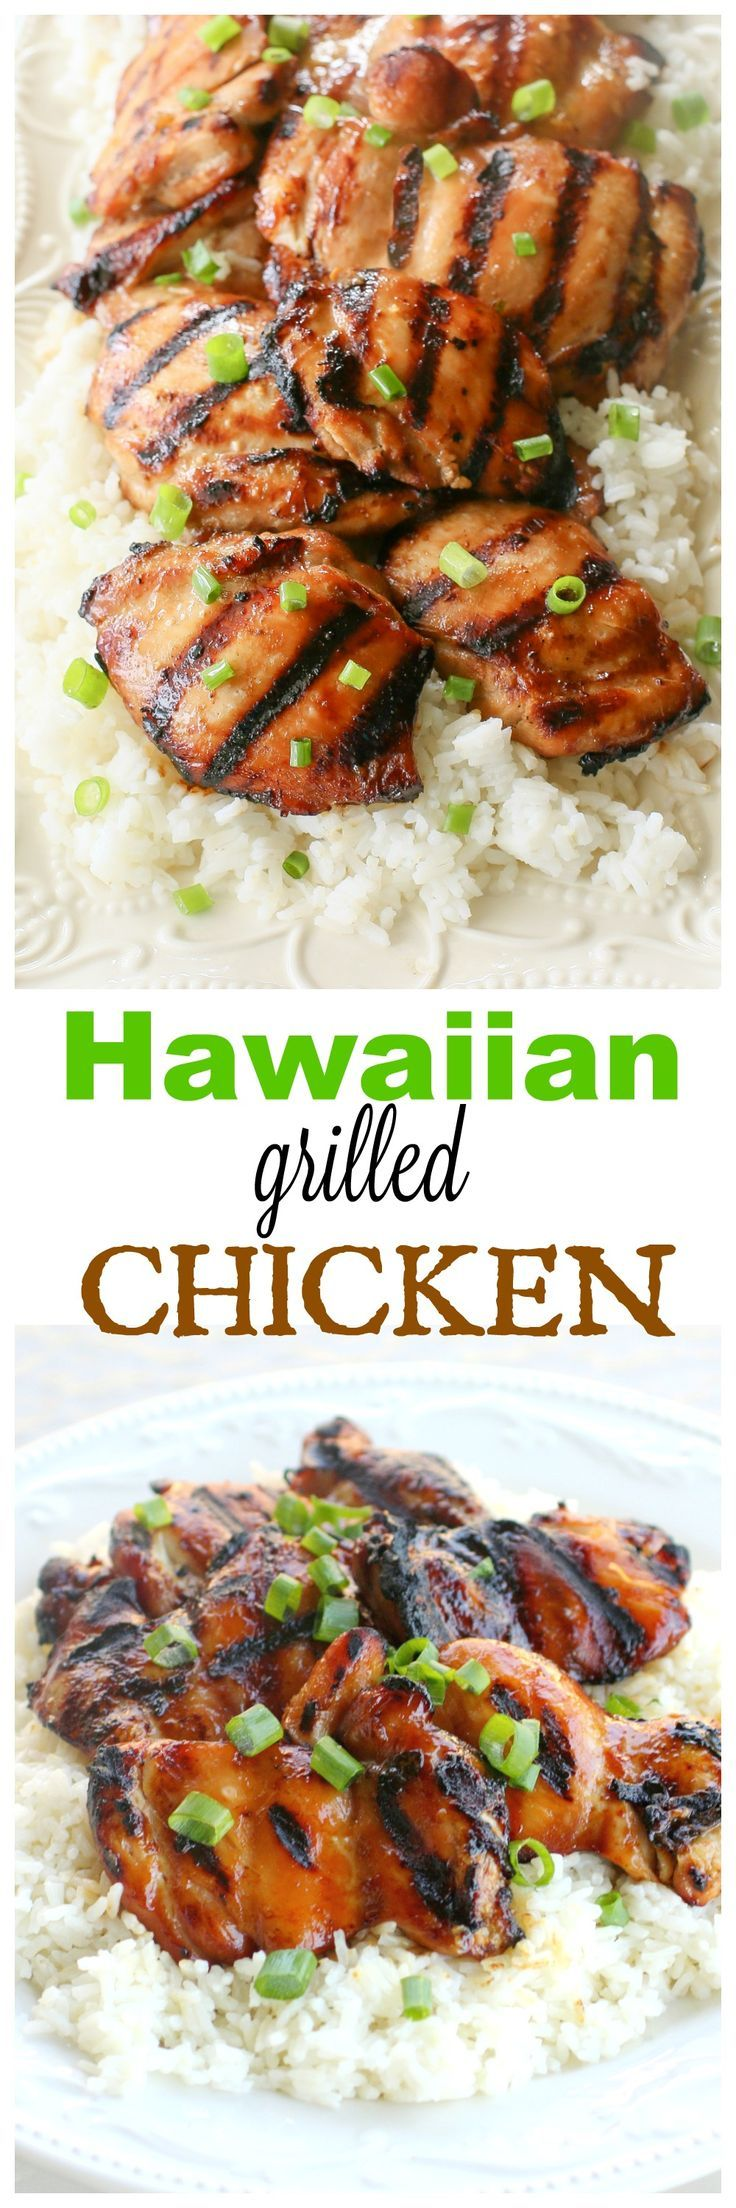 Lisa Eubanks Hawaiian Grilled Chicken | The Girl Who Ate Everything